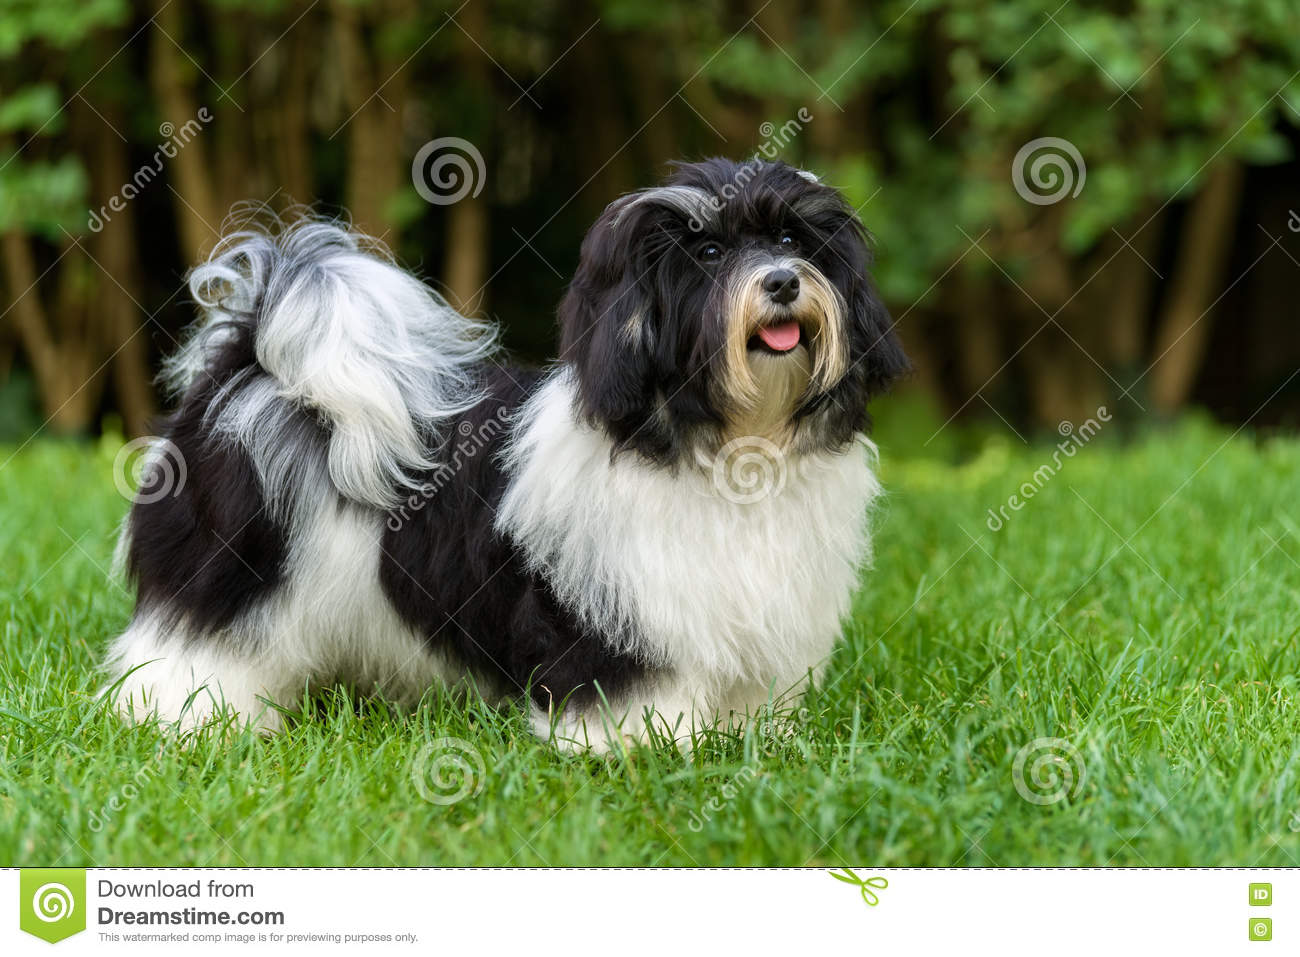 Happy Black And White Havanese Puppy Dog In The Grass Stock Photo Image Of Green Color 79334250